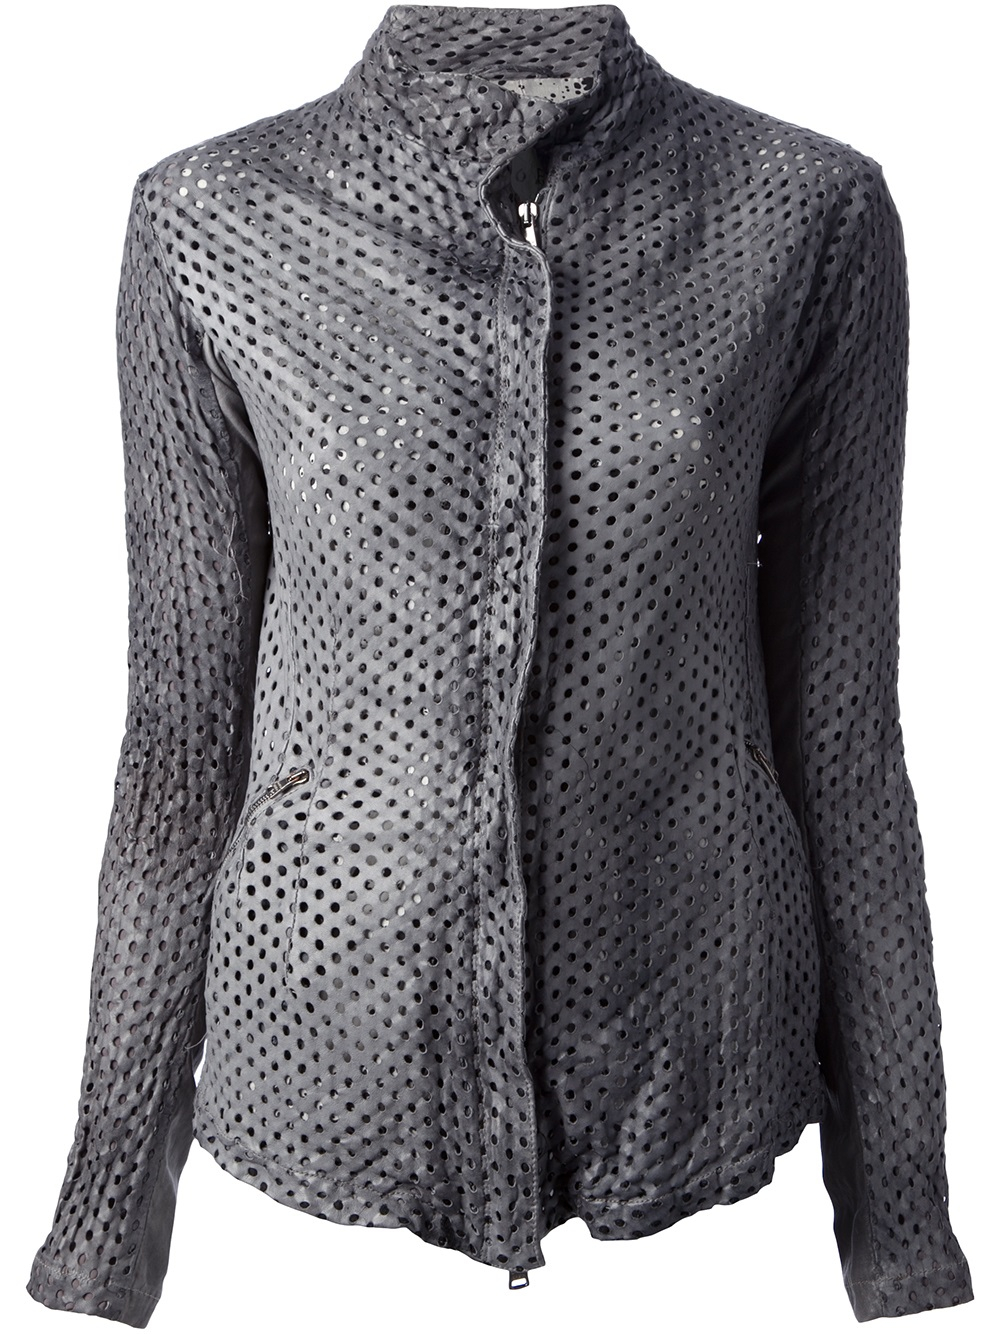 Giorgio brato Perforated Leather Jacket in Gray | Lyst